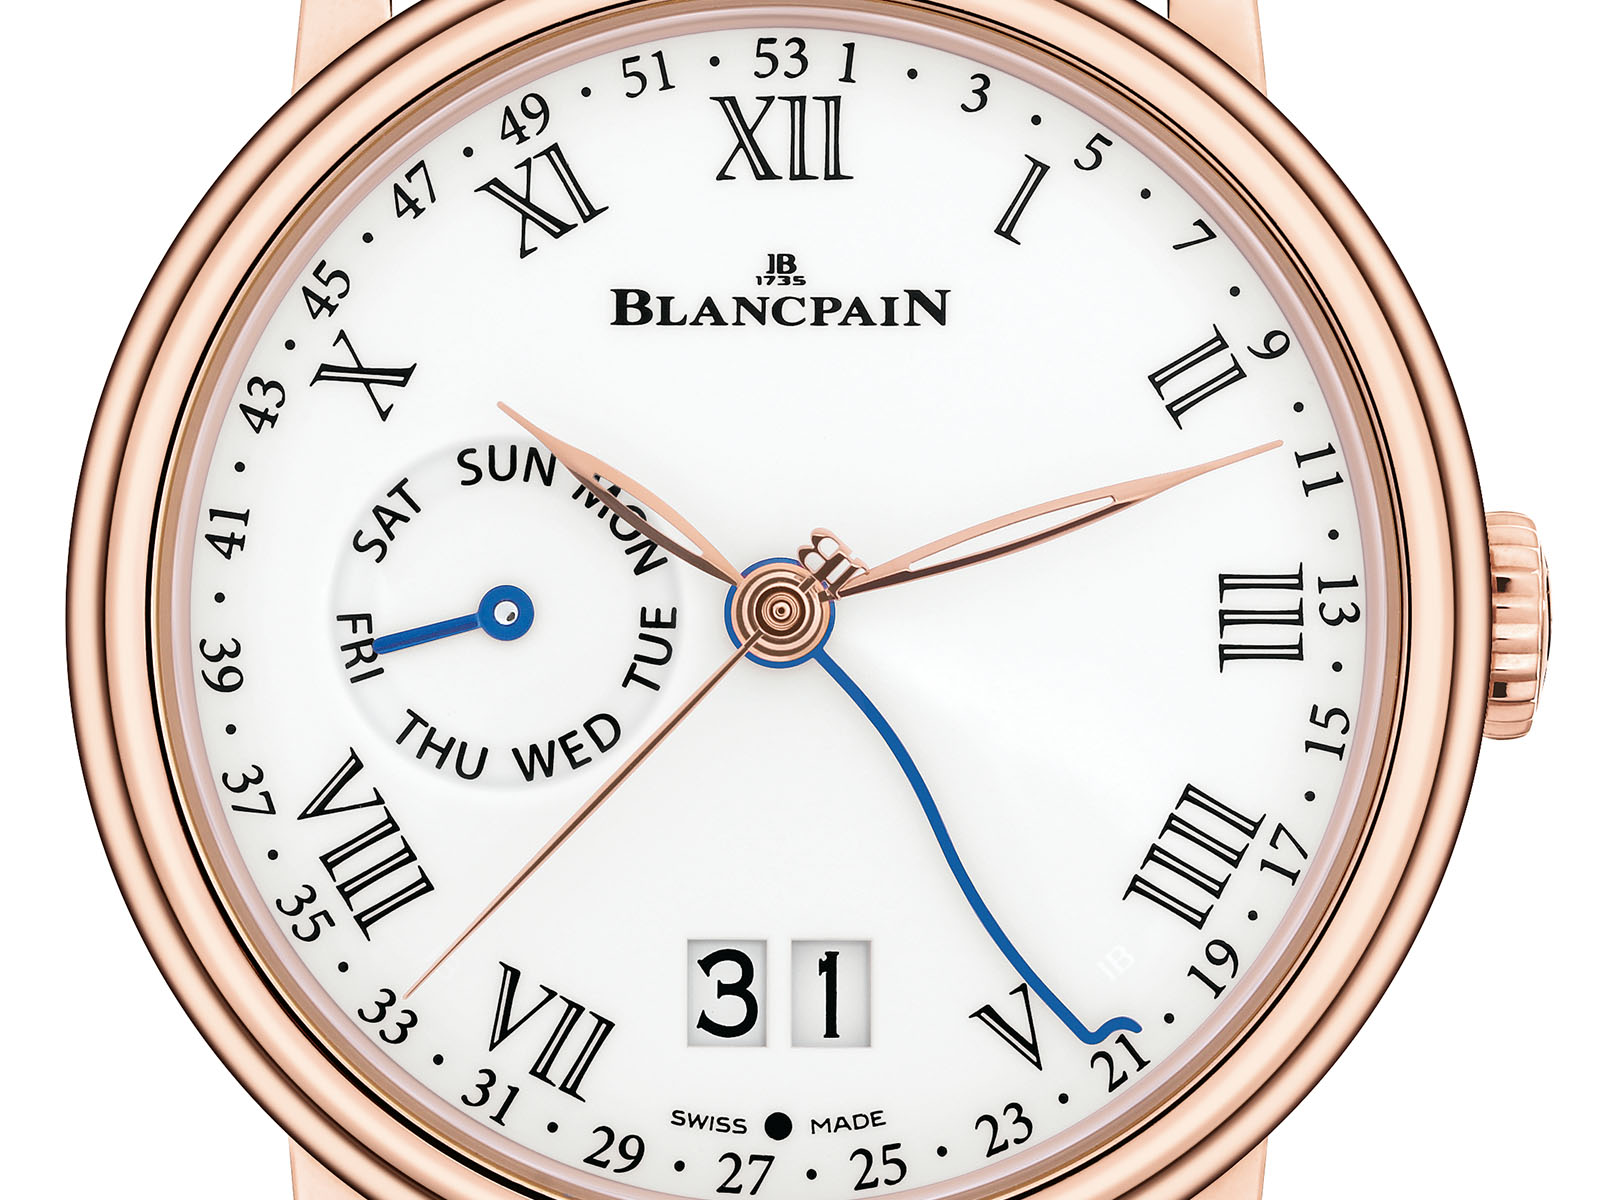 Blancpain-Villeret-Collection-6637-3631-55B-7.jpg